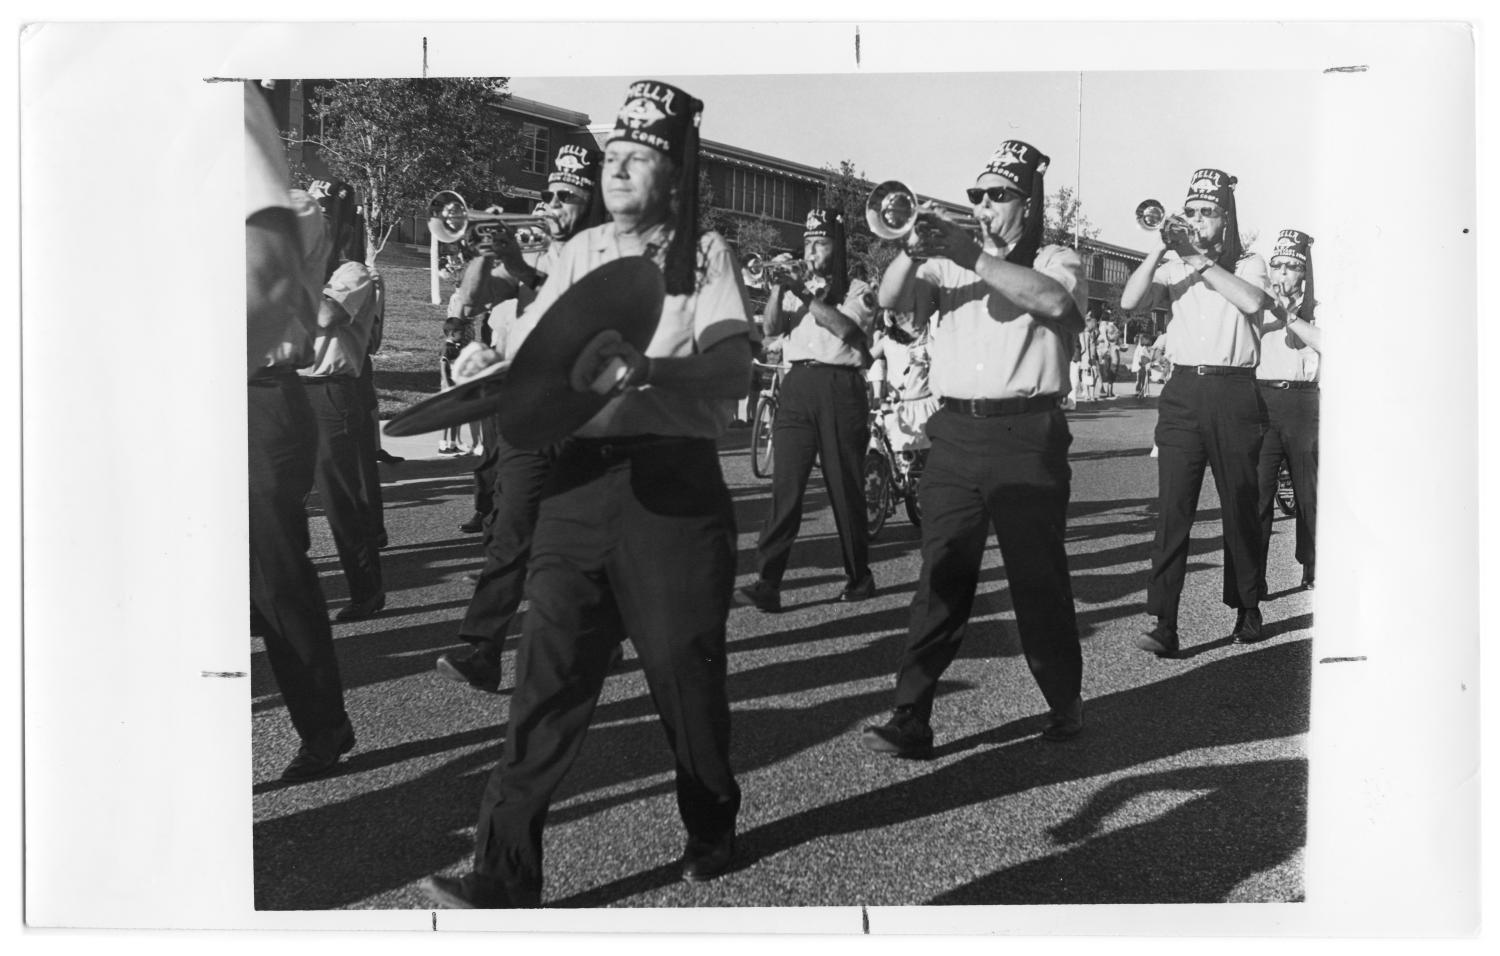 Fourth of July Parade, Photograph of men in a marching band at the Independence Day parade, on Beltline Road in front of Richardson High School. The men are wearing Shriners fezzes. One man is holding a pair of symbols, and the men behind him are playing trumpets.,